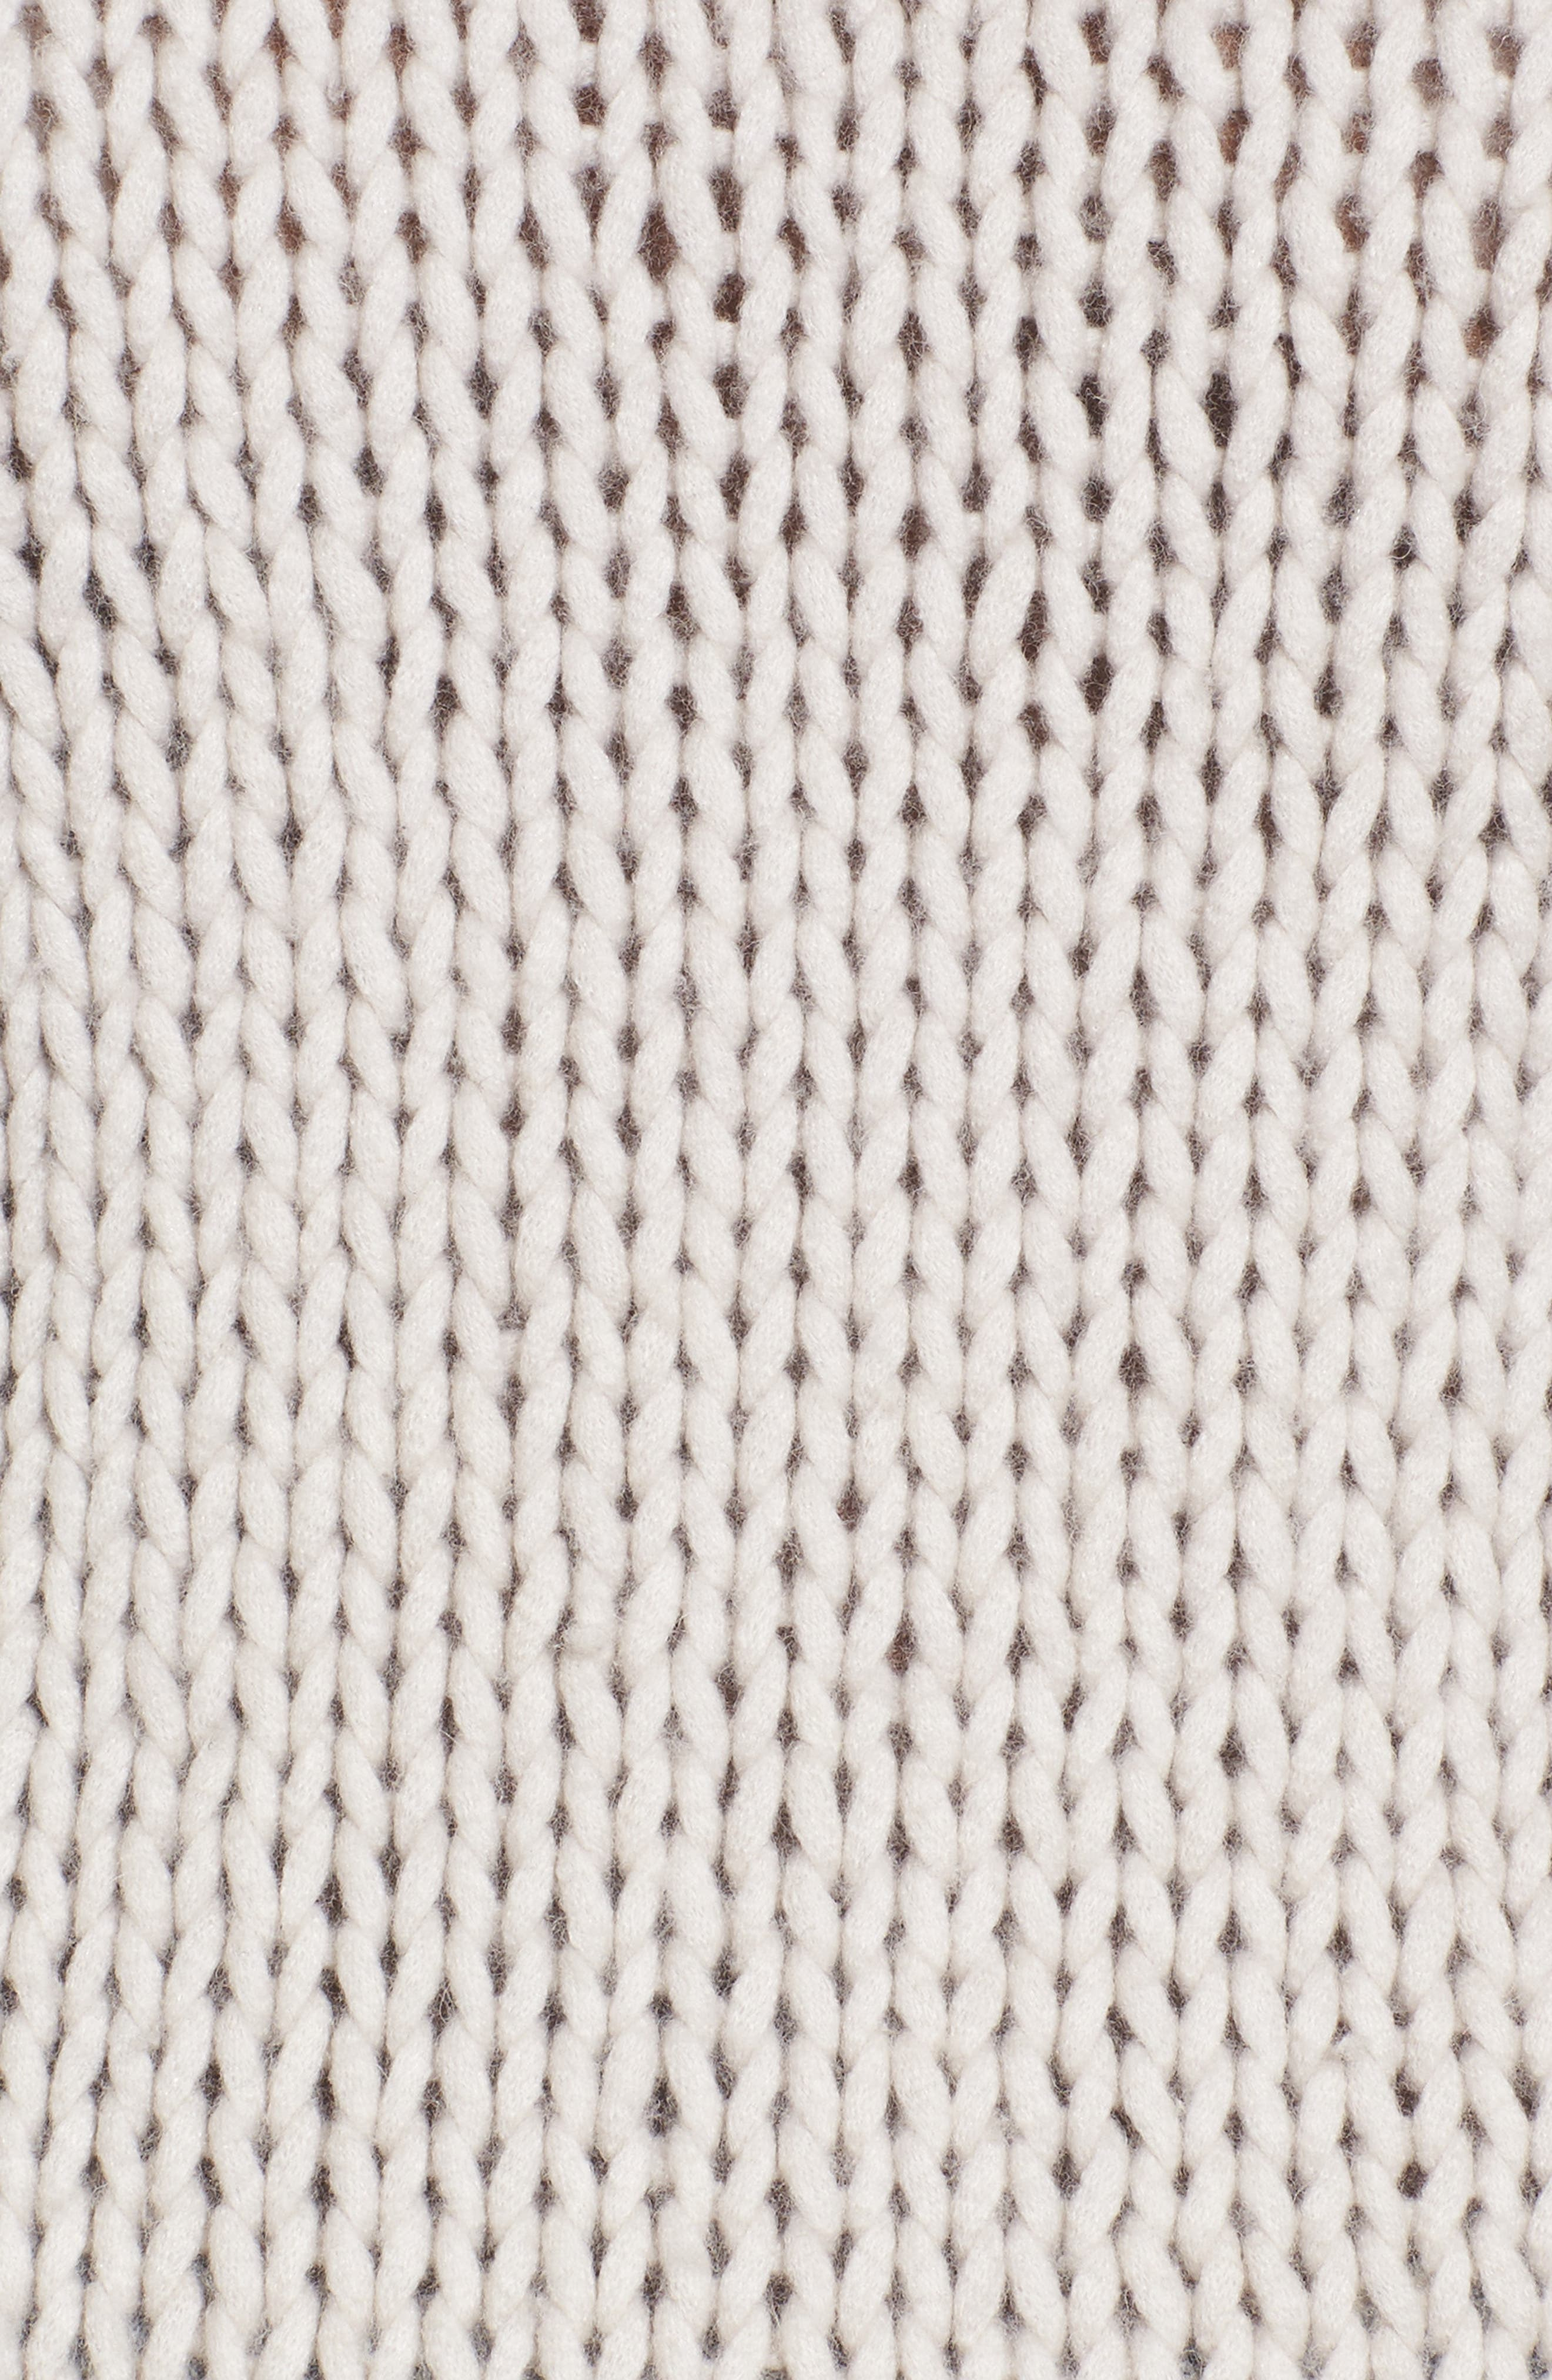 Hawken Turtleneck Sweater,                             Alternate thumbnail 5, color,                             Pearl